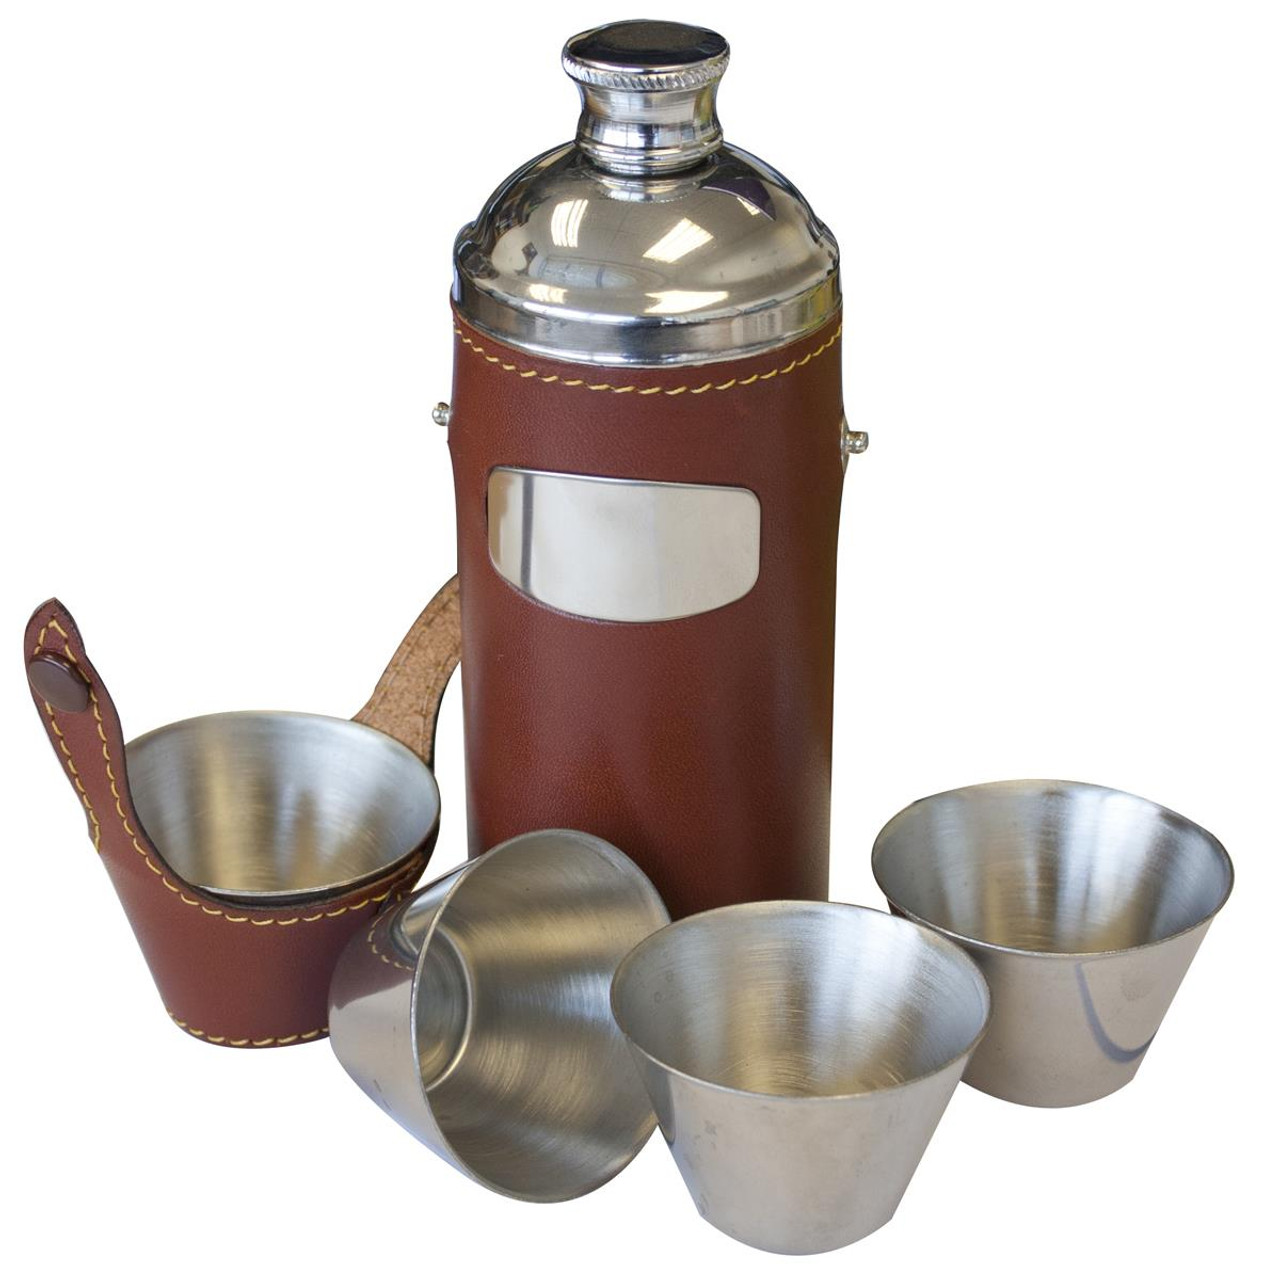 Brown Bisley 8oz Hunters Flask & Cup Set